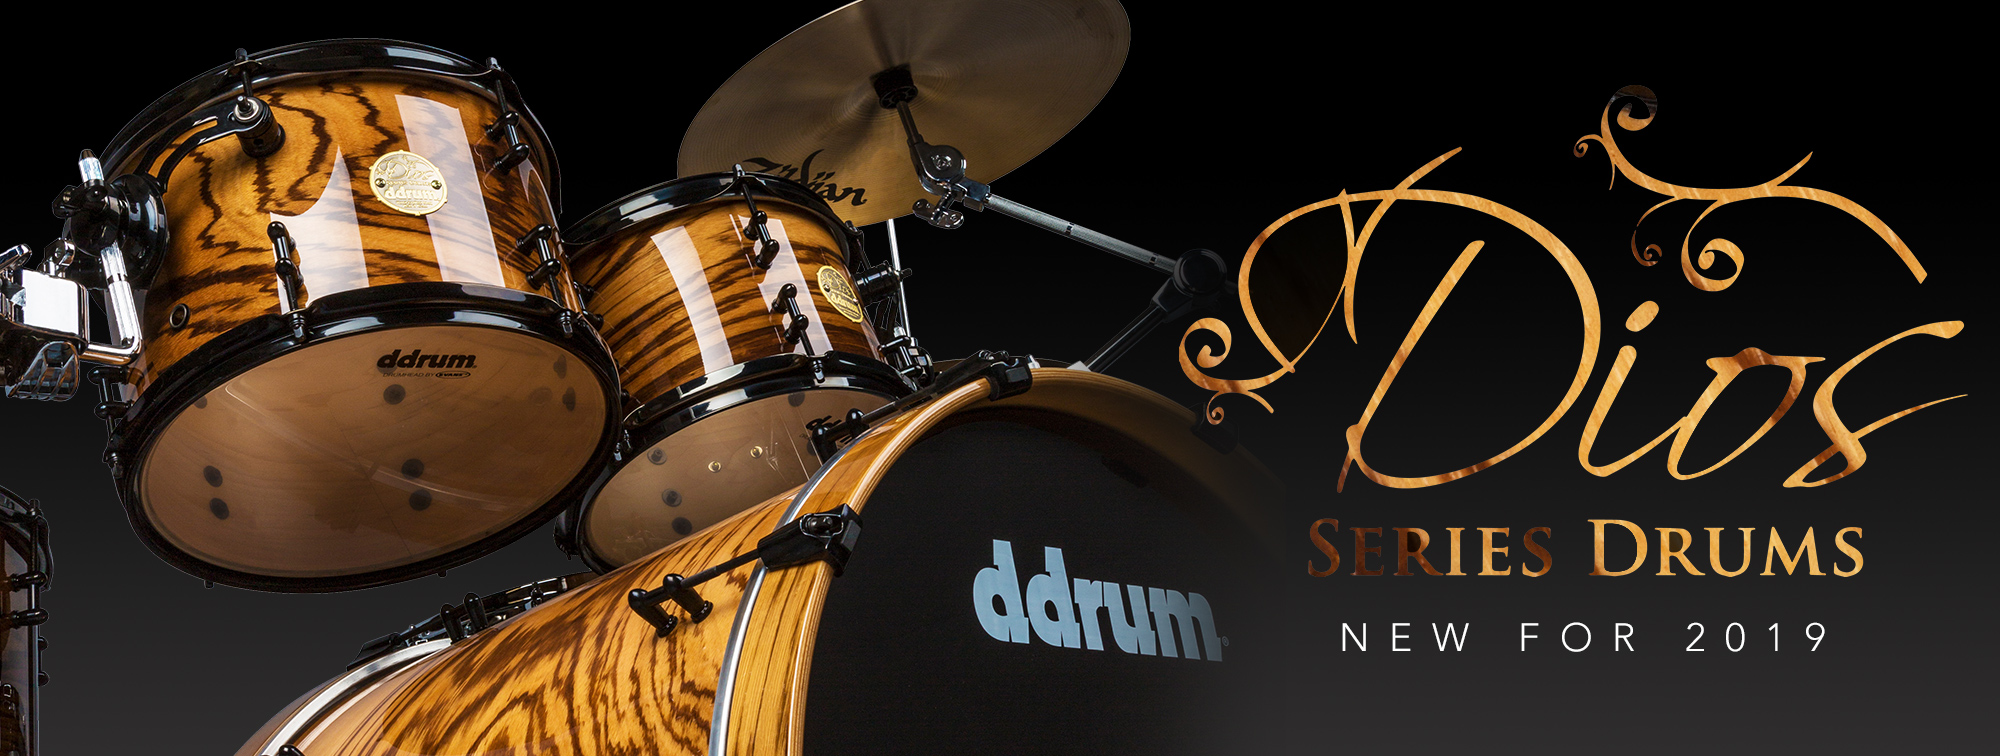 ddrum New for 2019